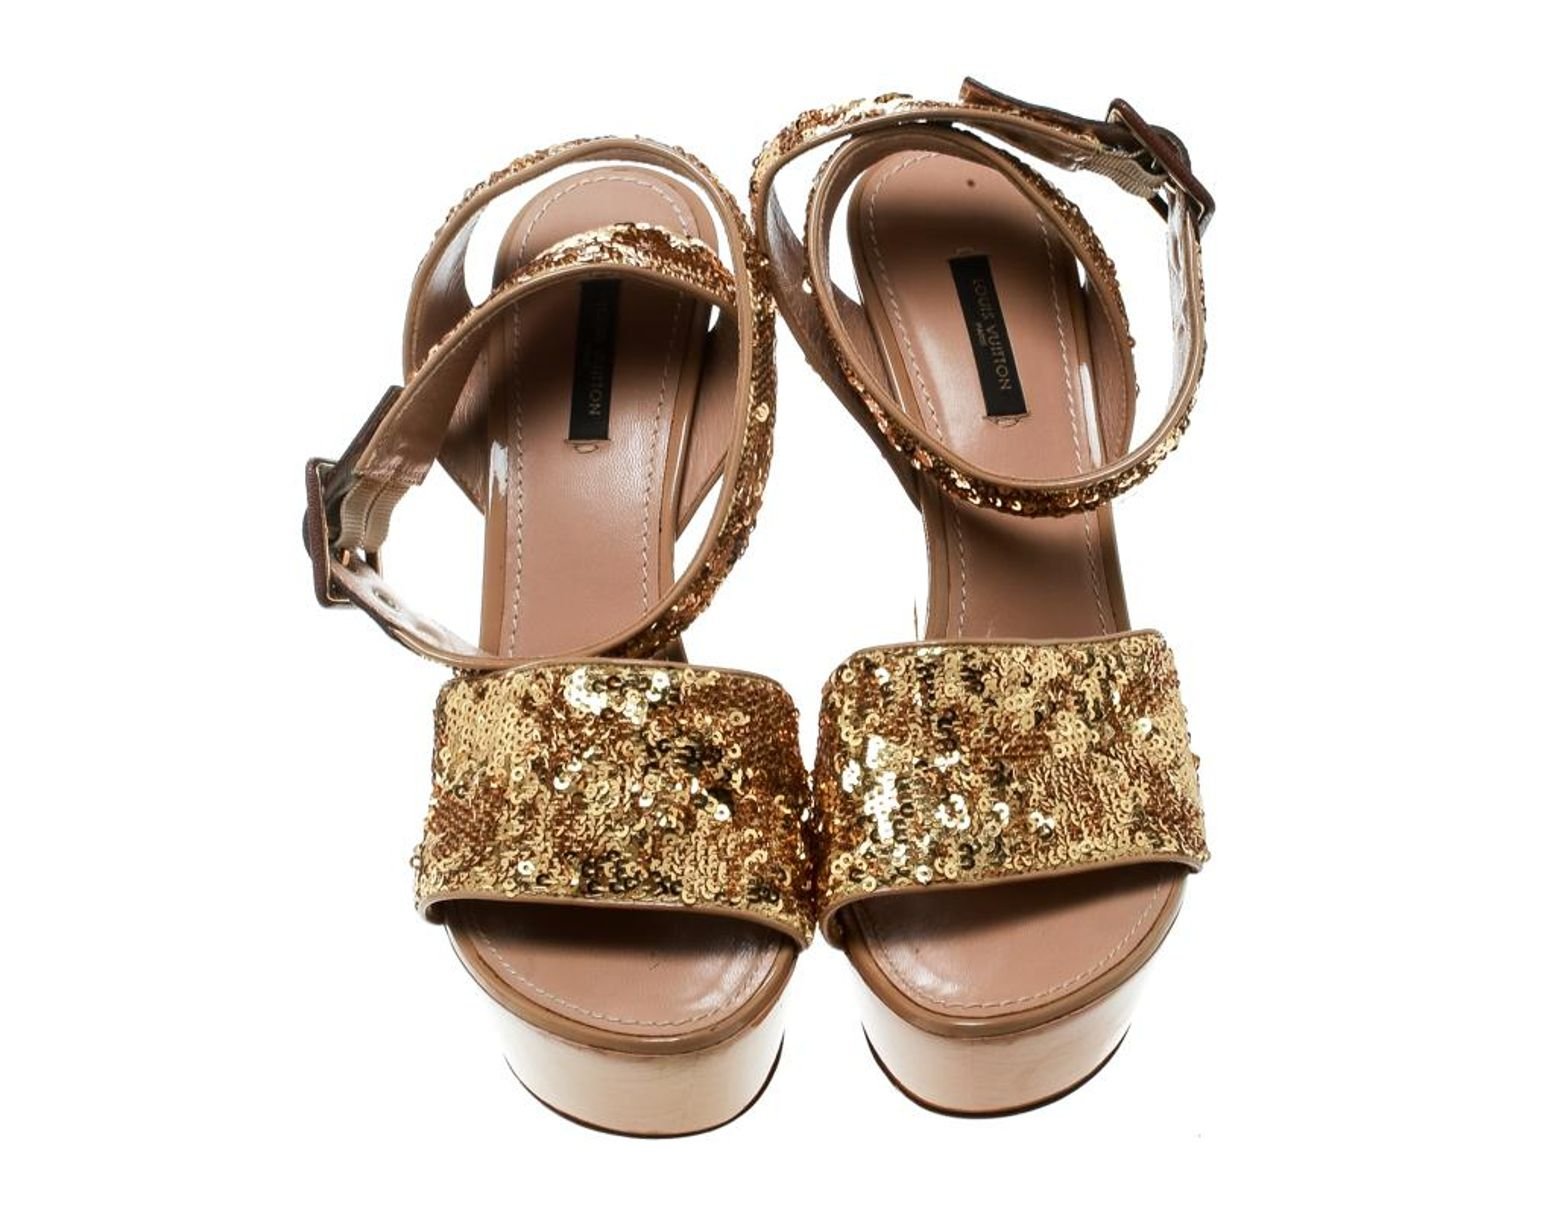 377218a9f860 Lyst - Louis Vuitton Leather Sandal in Metallic - Save 1%